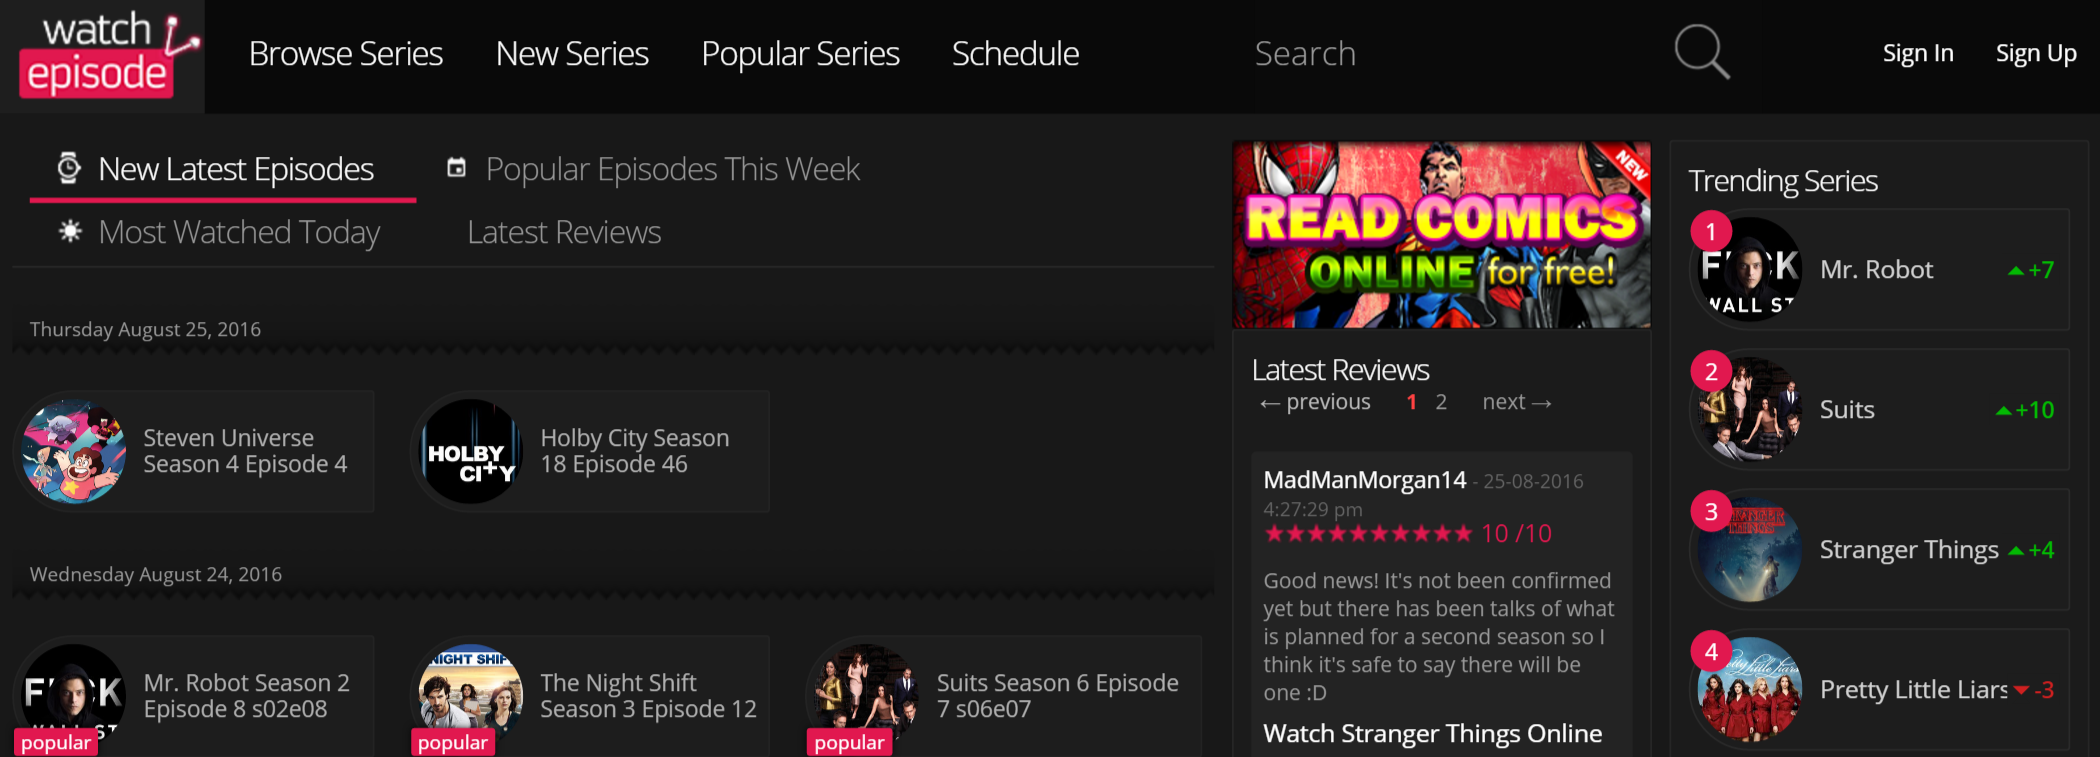 Watch tv shows on android free online